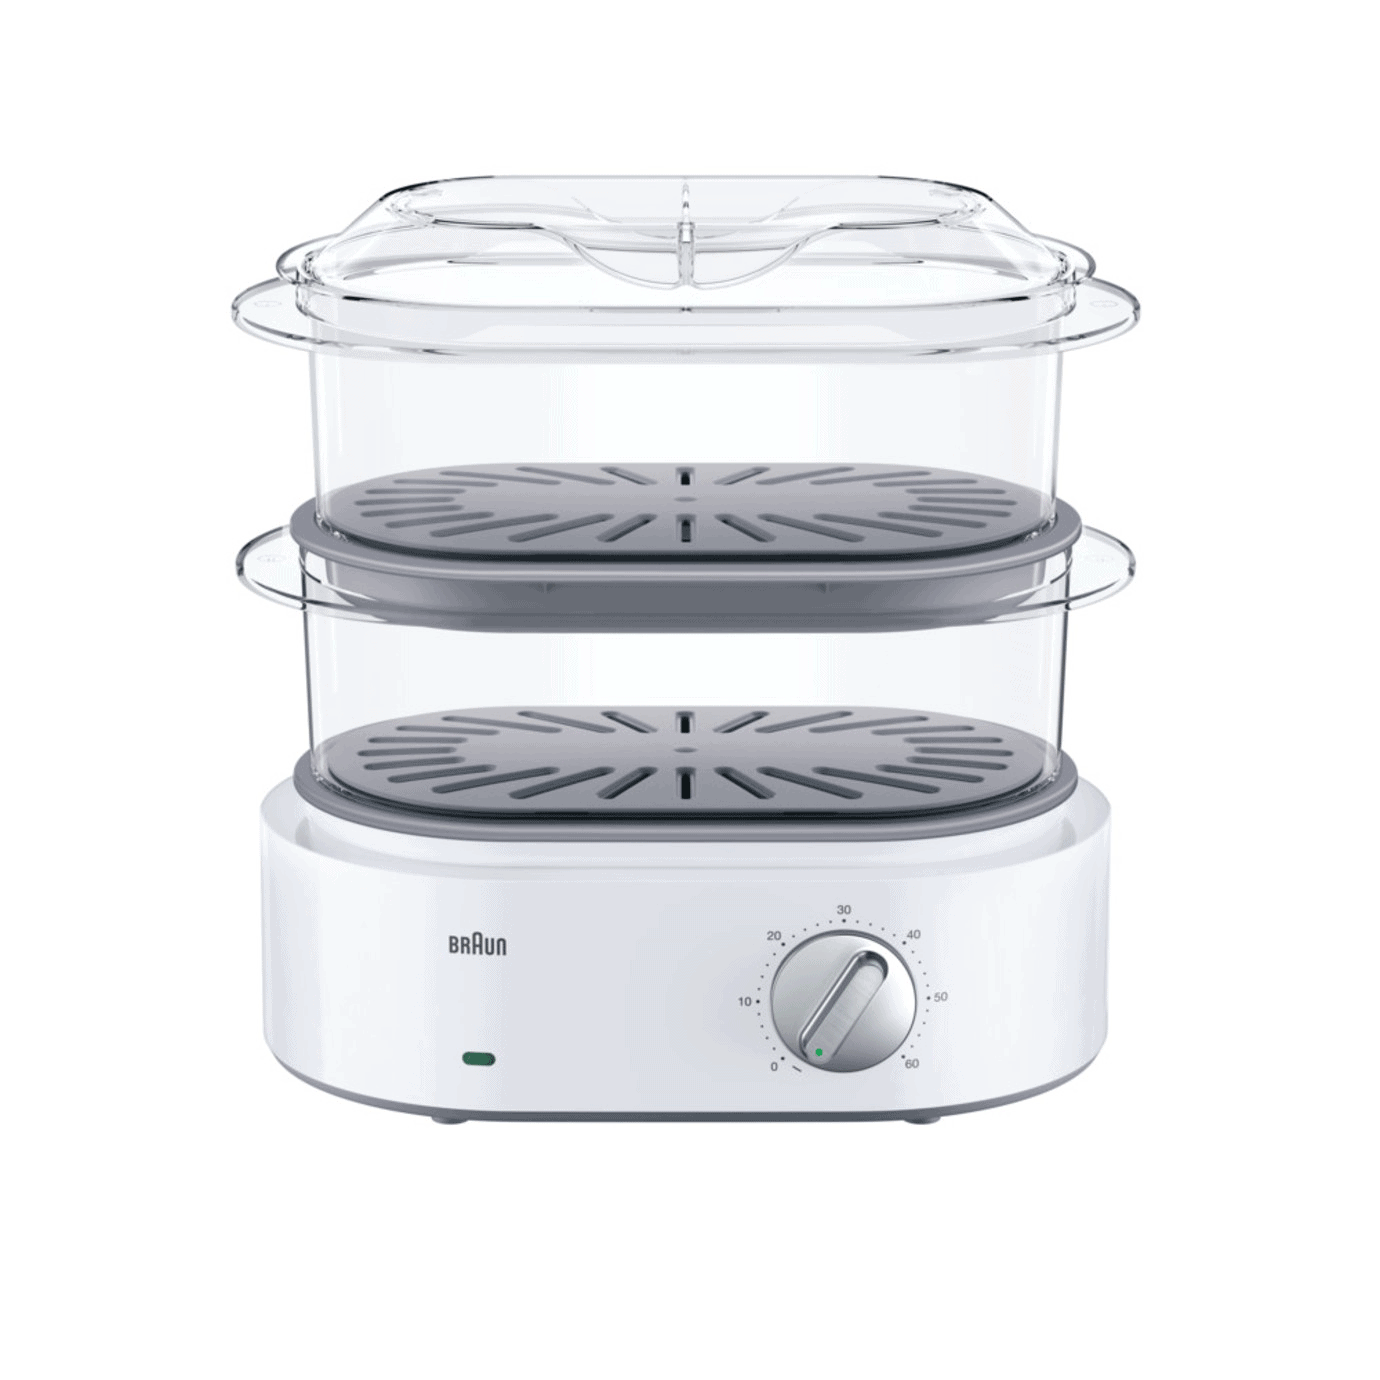 Find Reliable Braun Food Steamer in Singapore at affordable prices